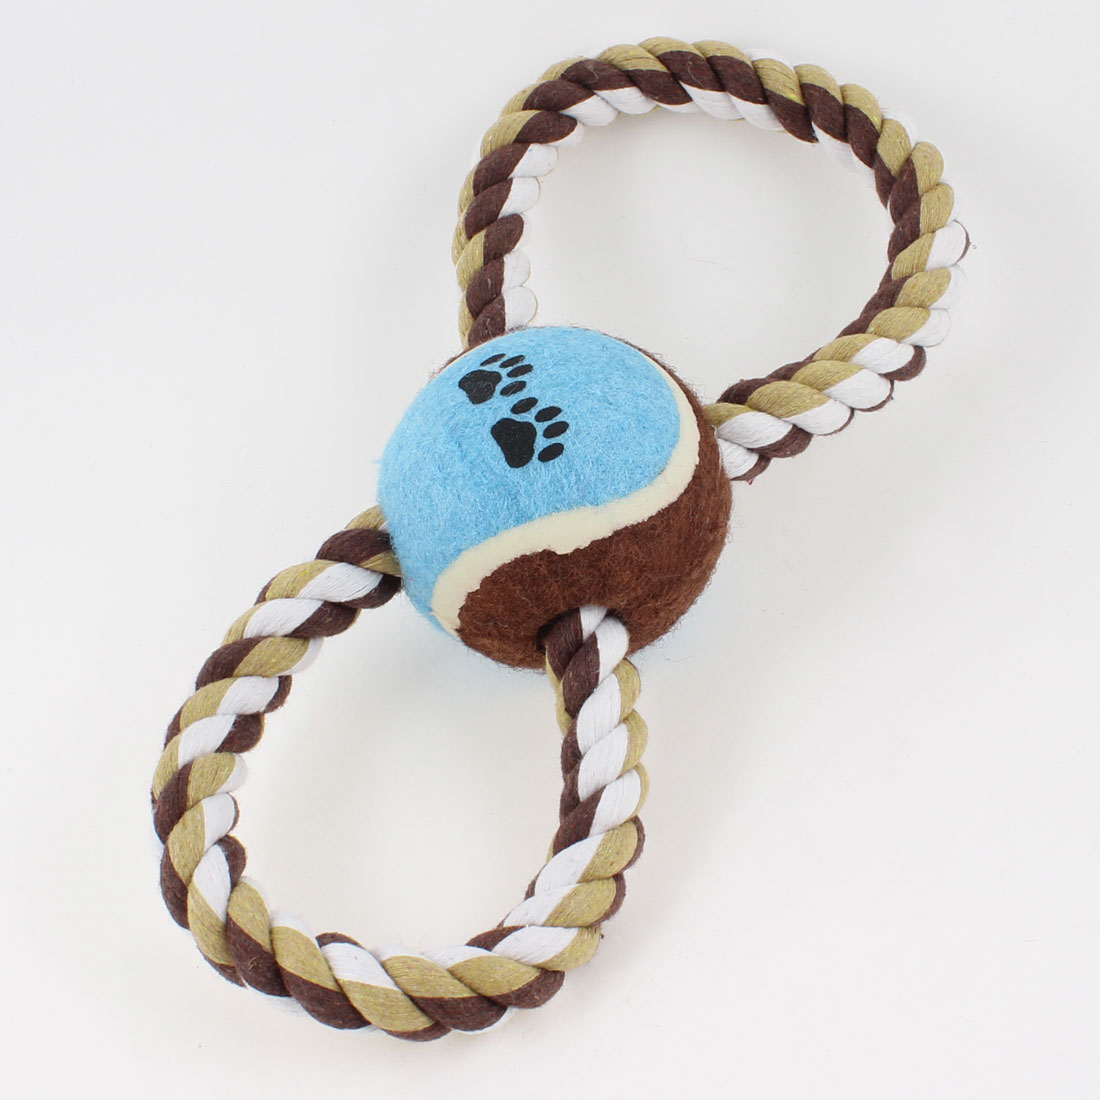 8 Shape Cotton Knot Rope Blue Ball Pet Puppy Chew Tug Toy